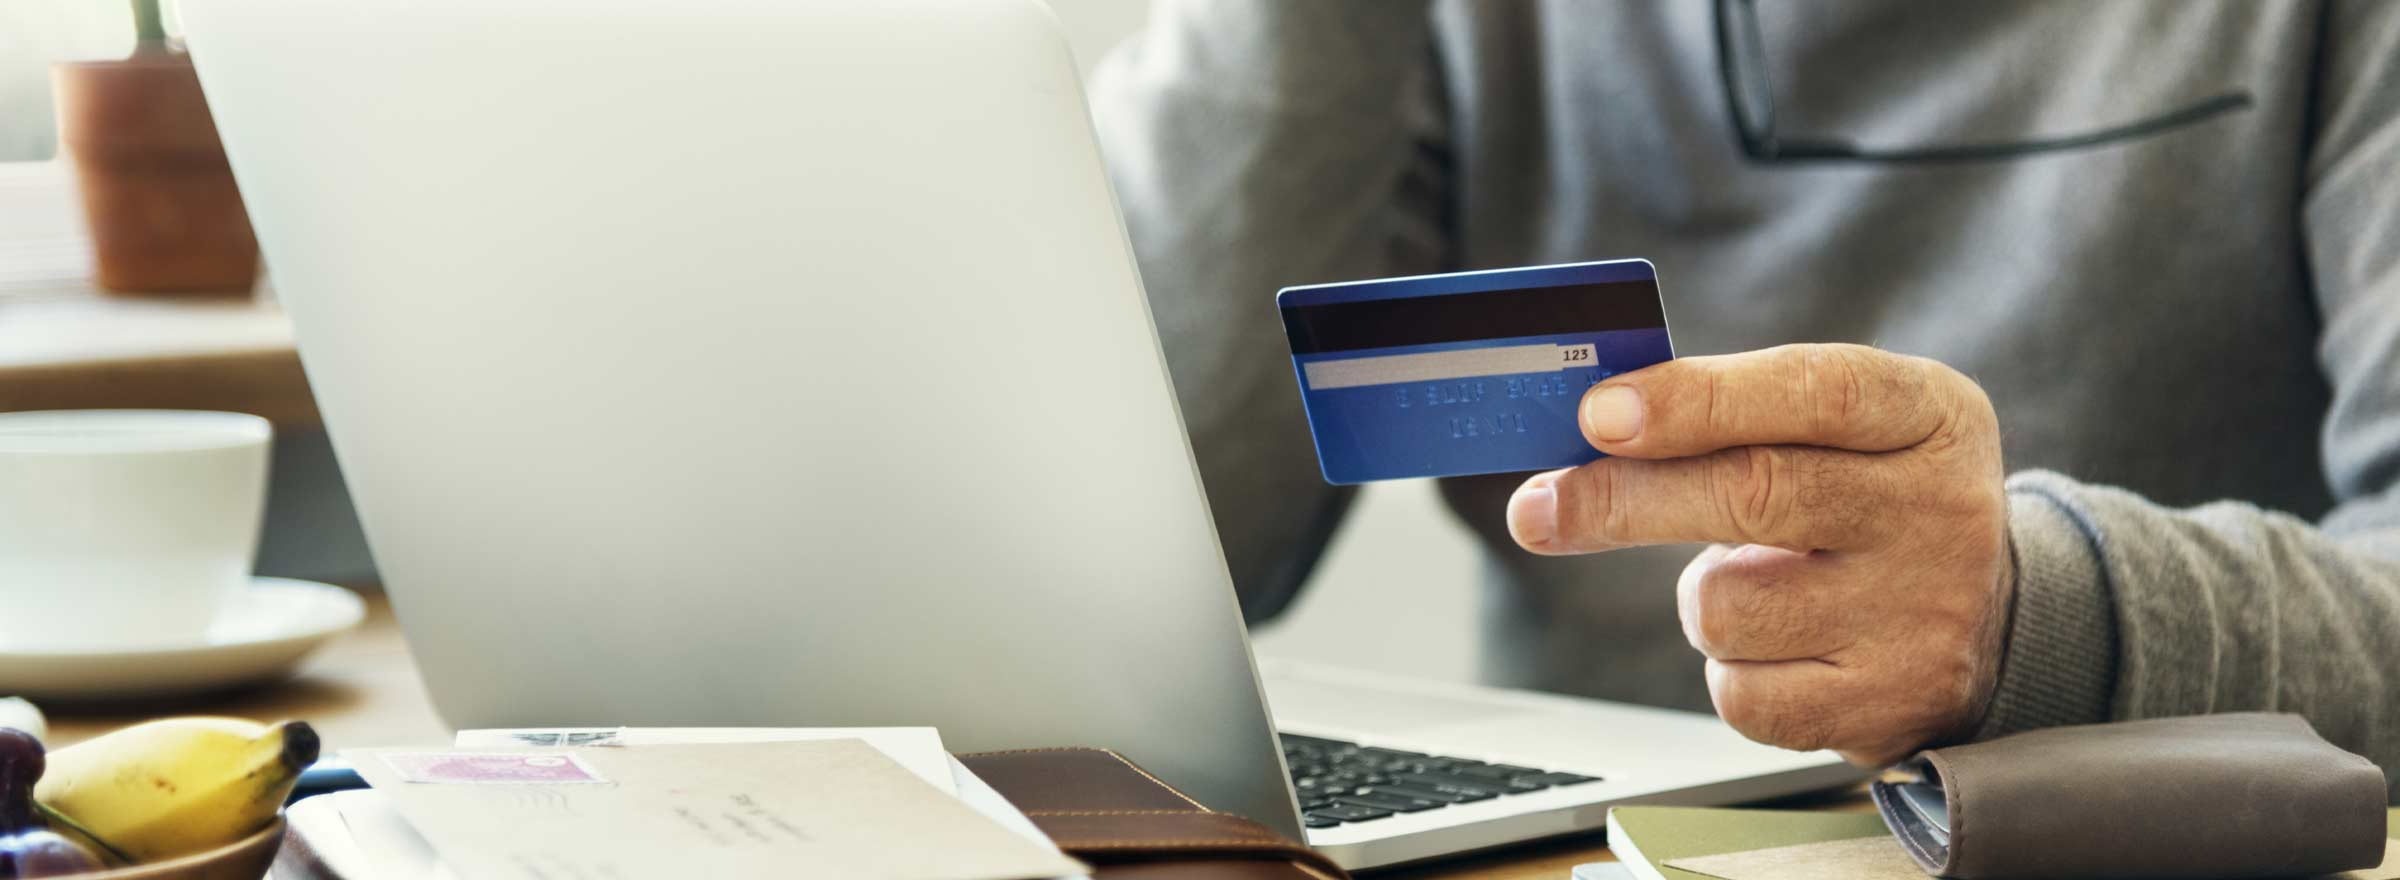 hand holding a credit card in front of a computer screen